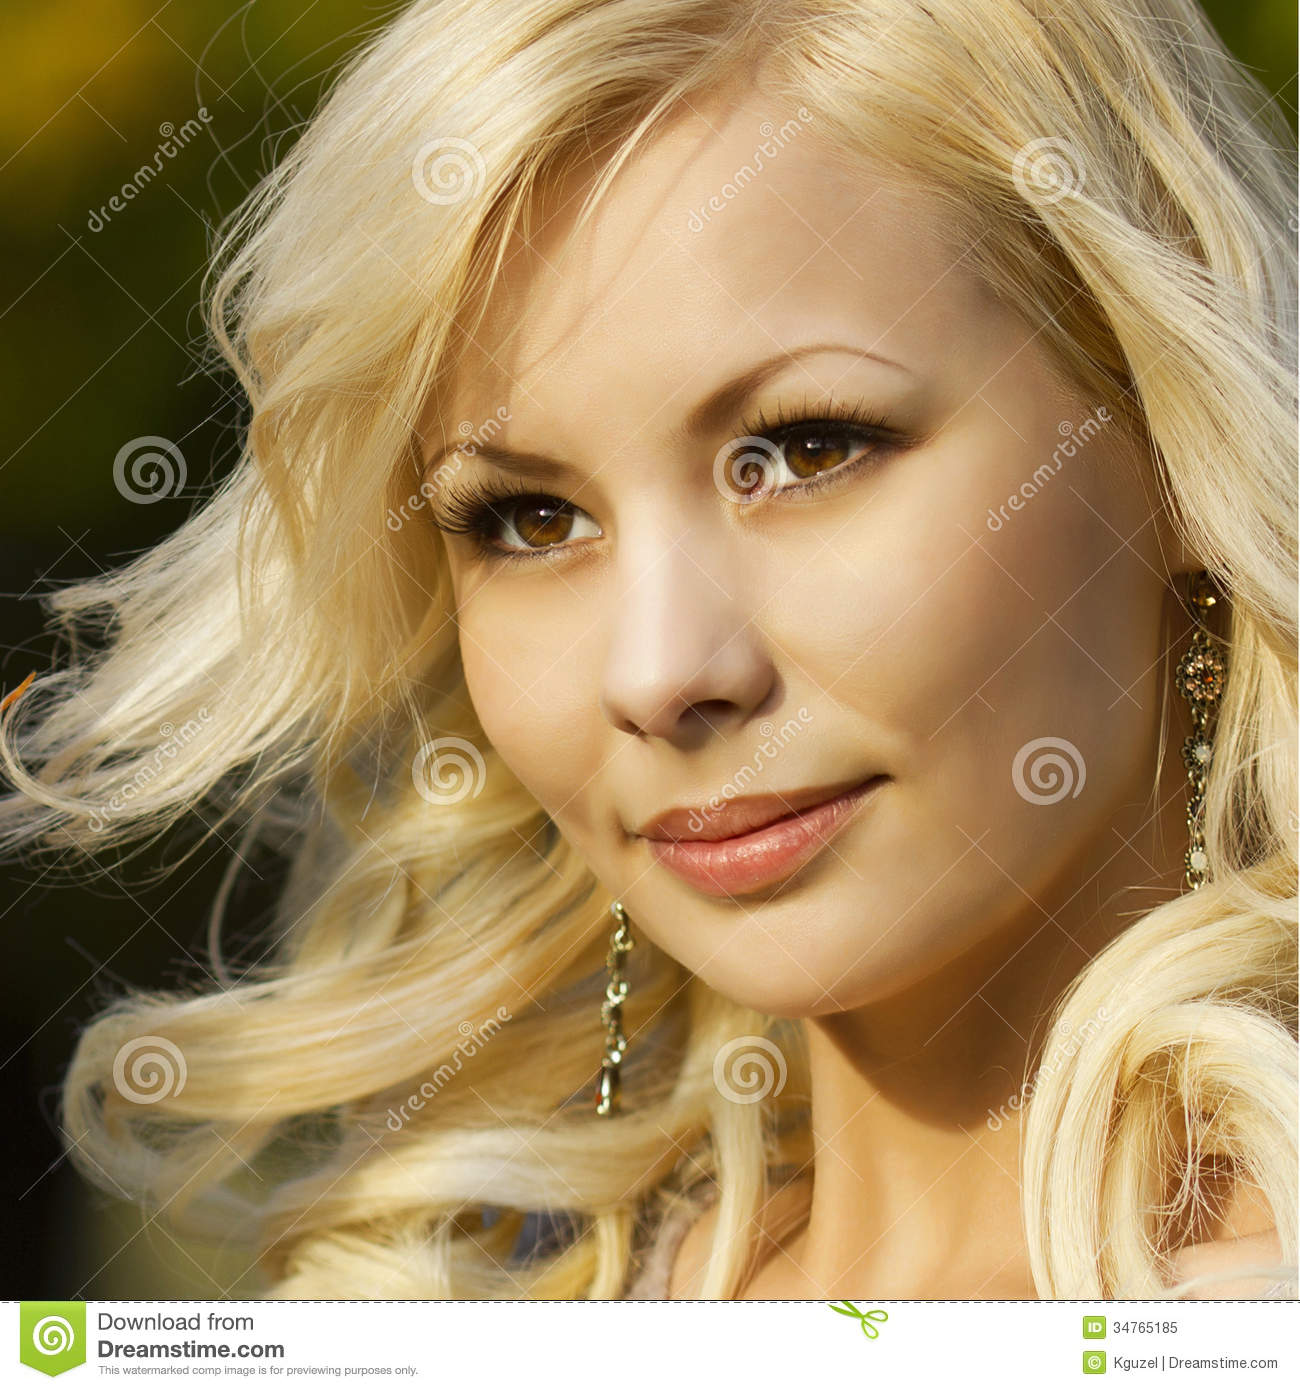 Blonde girl. Portrait of Beautiful Smiling Happy Young Woman Outside.